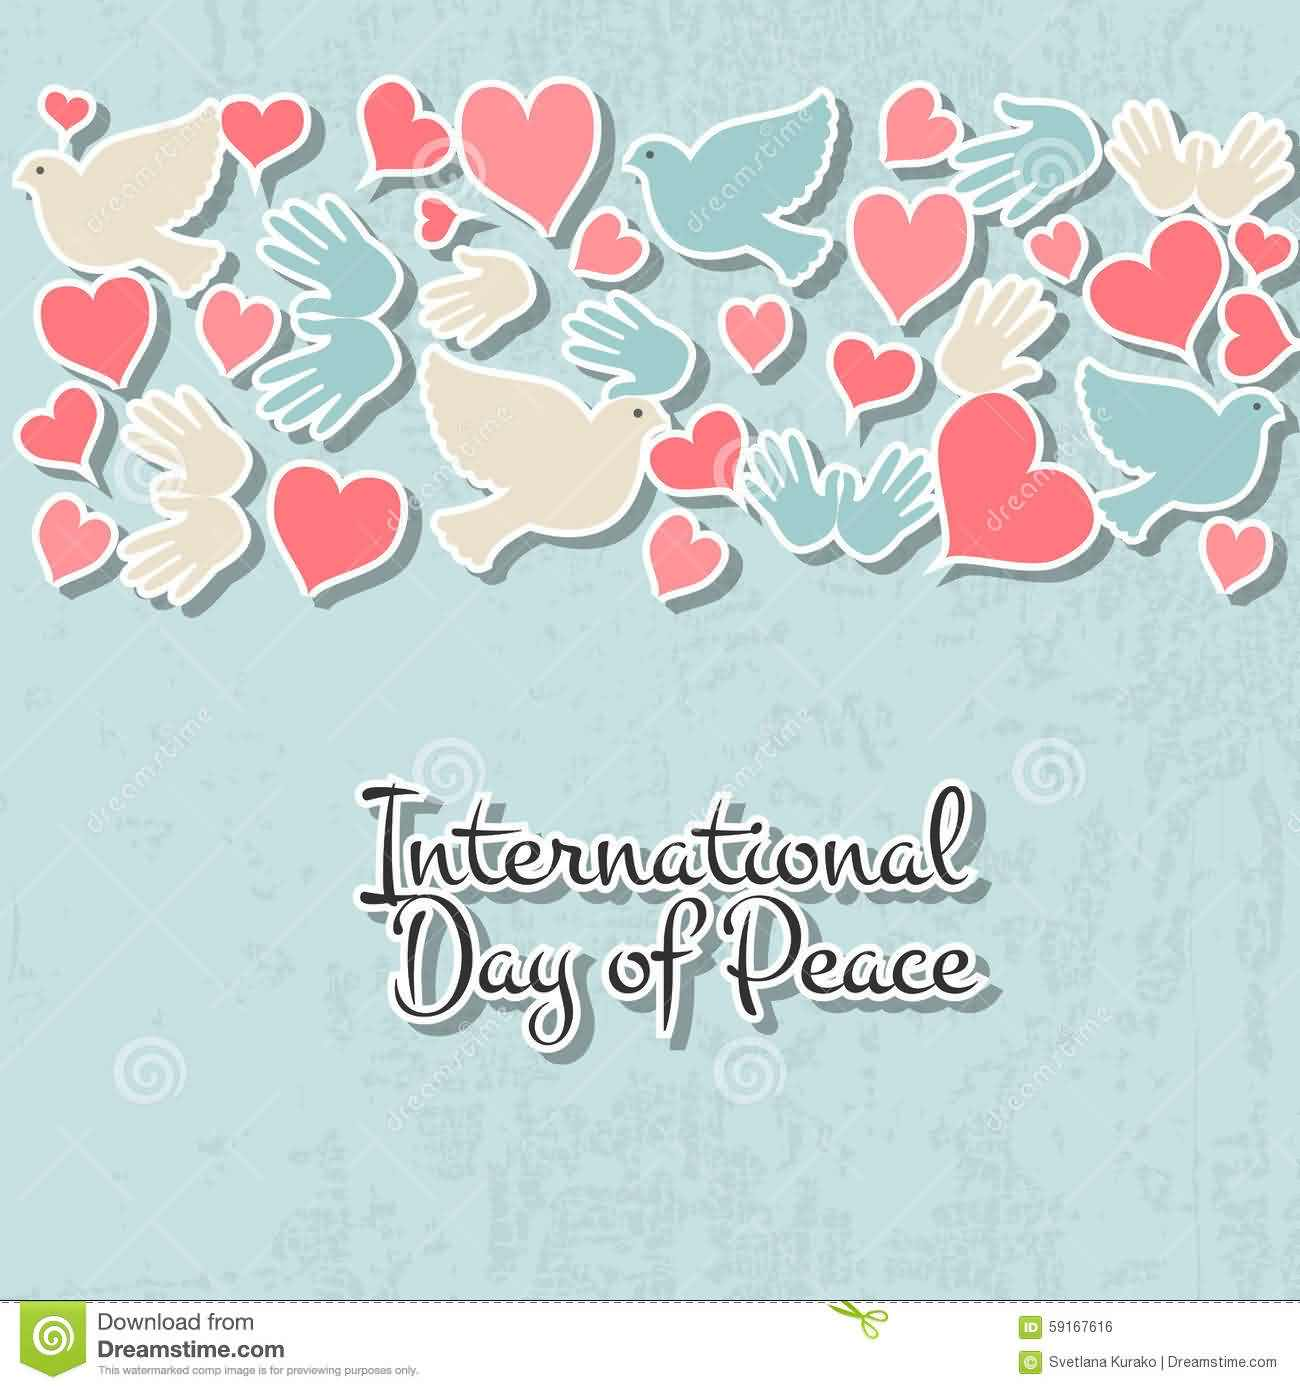 146-International Peace Day Wishes